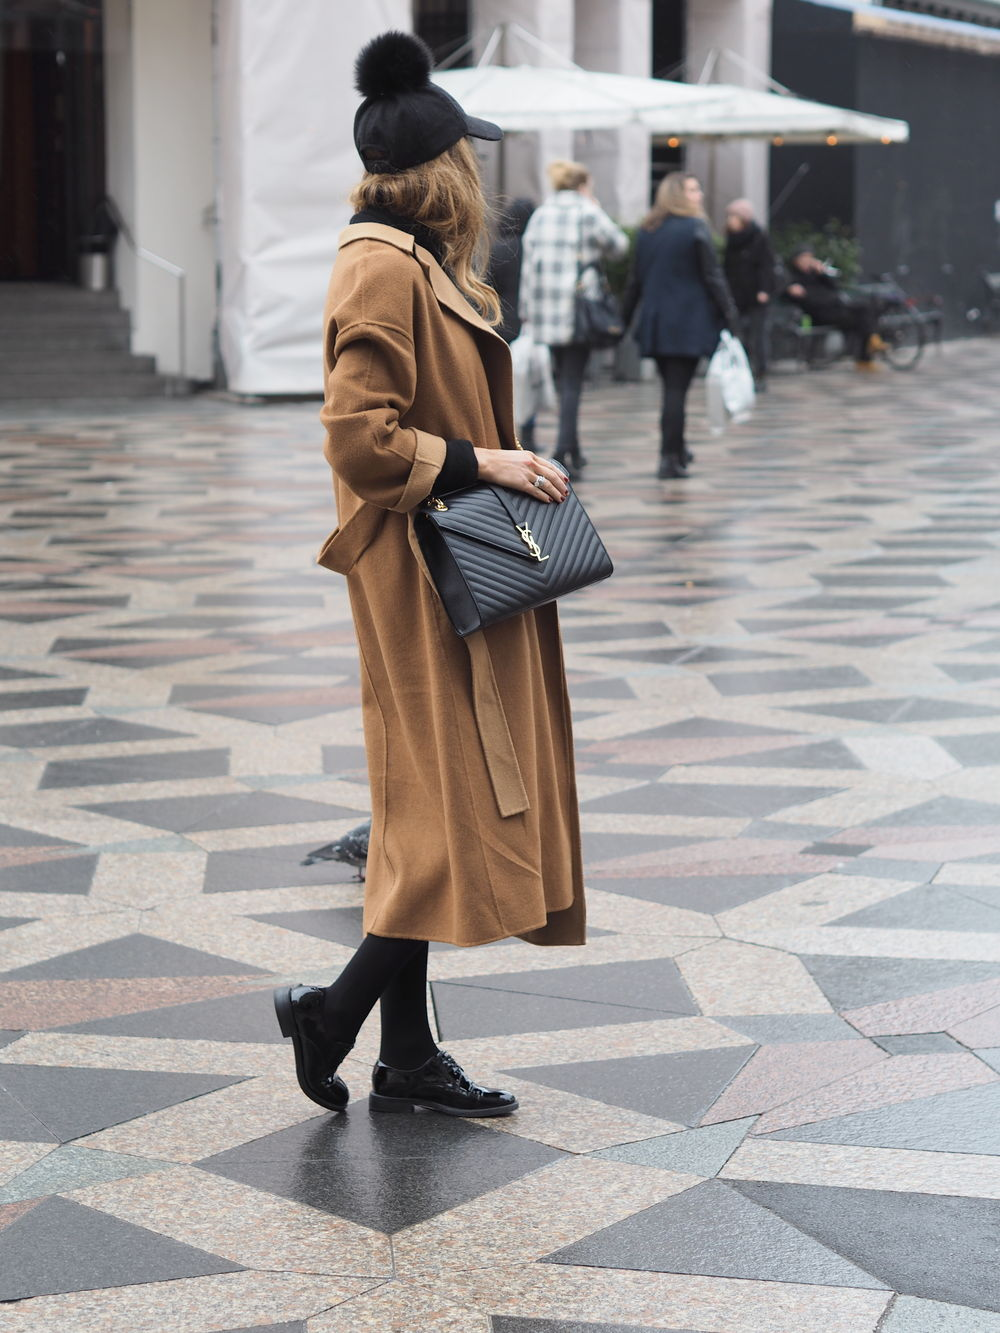 Benedichte is rocking the camel trend here, wearing this maxi coat with tights and patent black brogues for a classic, sophisticated winter look. A fluffy peaked cap will also add a cutesy edge to your outfit, as seen here. Coat: Zara, Cap: Twist & Tango, Shoes: Saint Laurent.